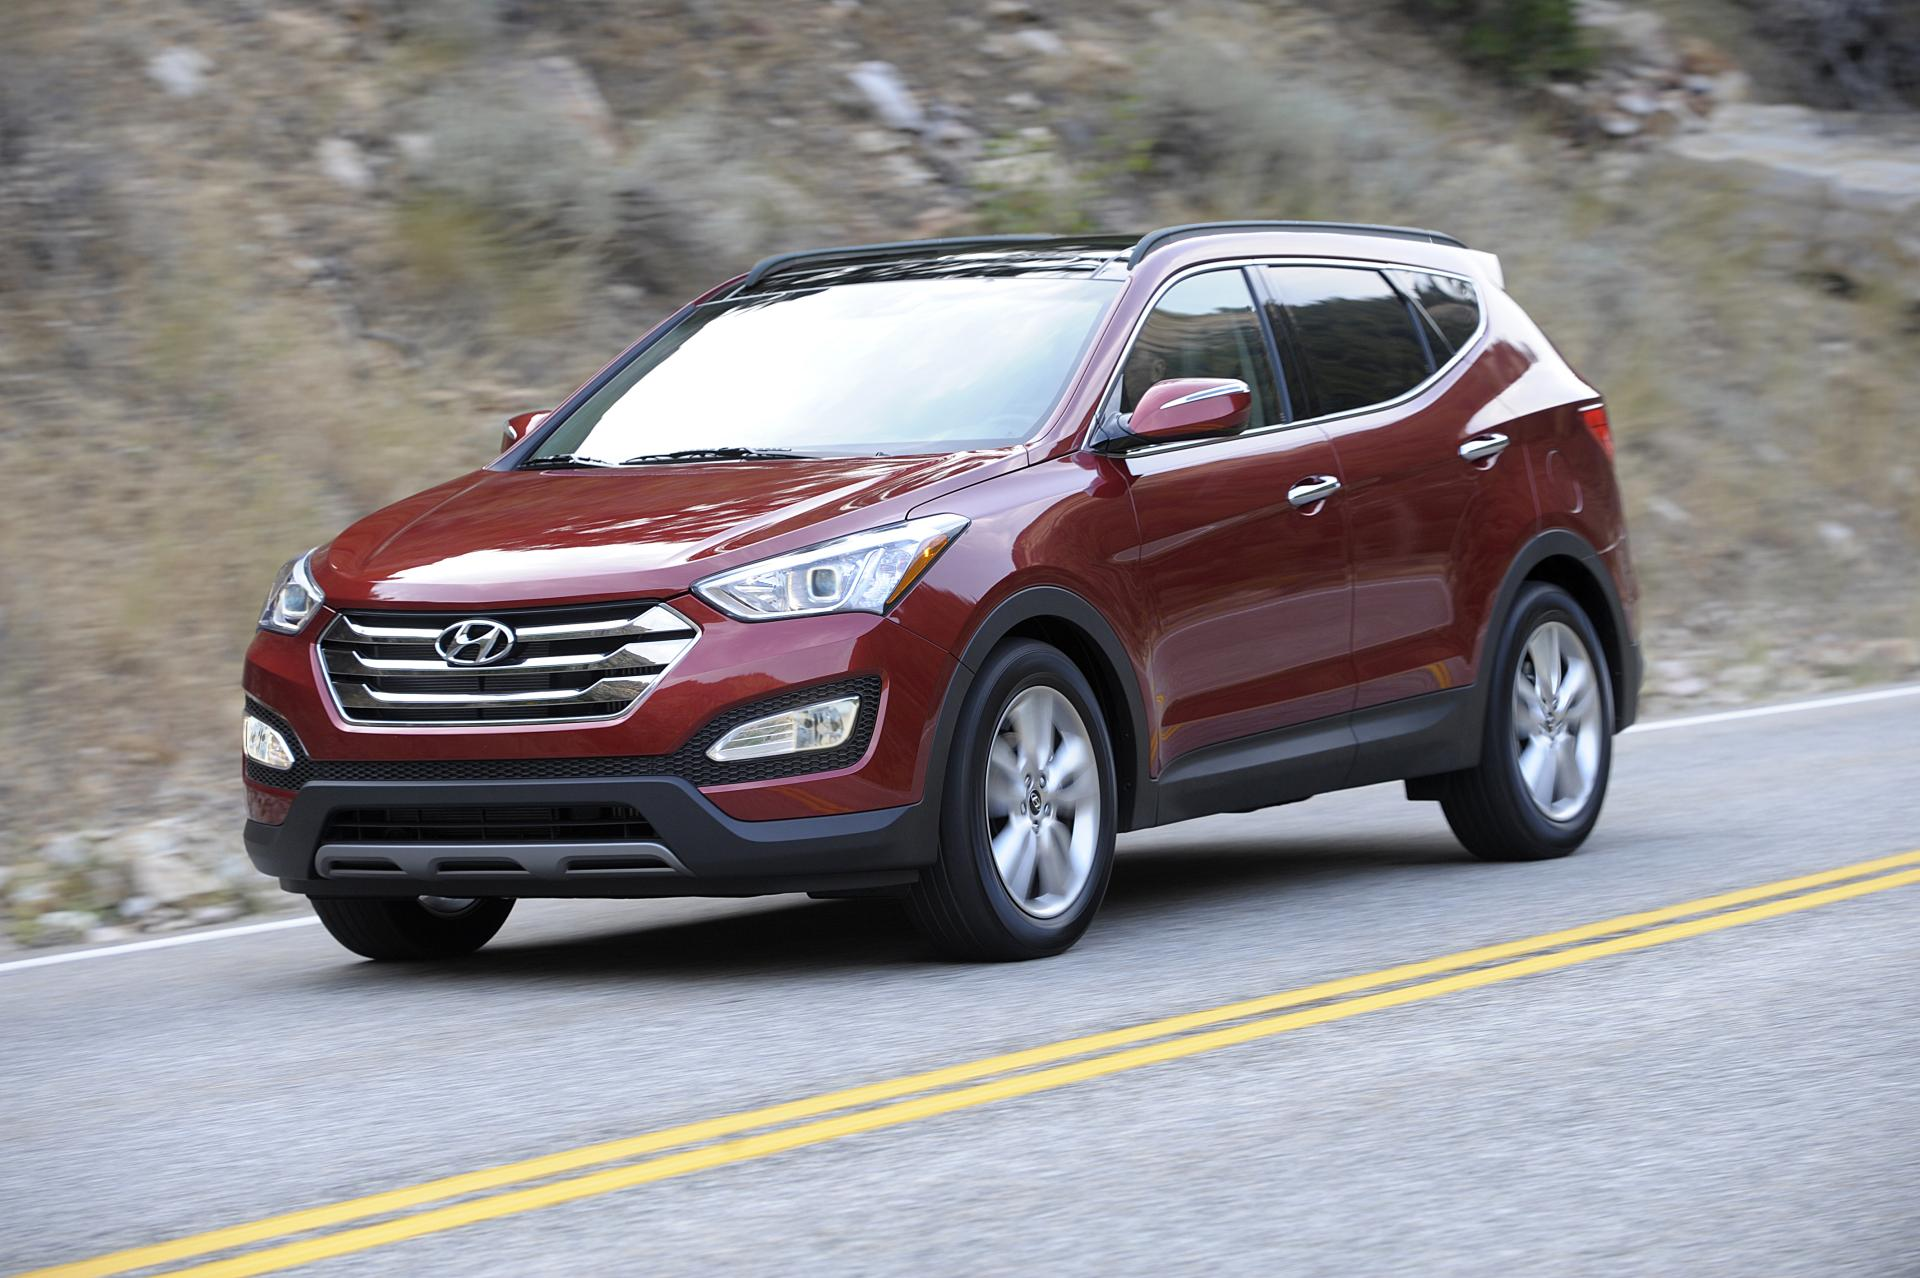 2014 Hyundai Santa Fe Sport News And Information